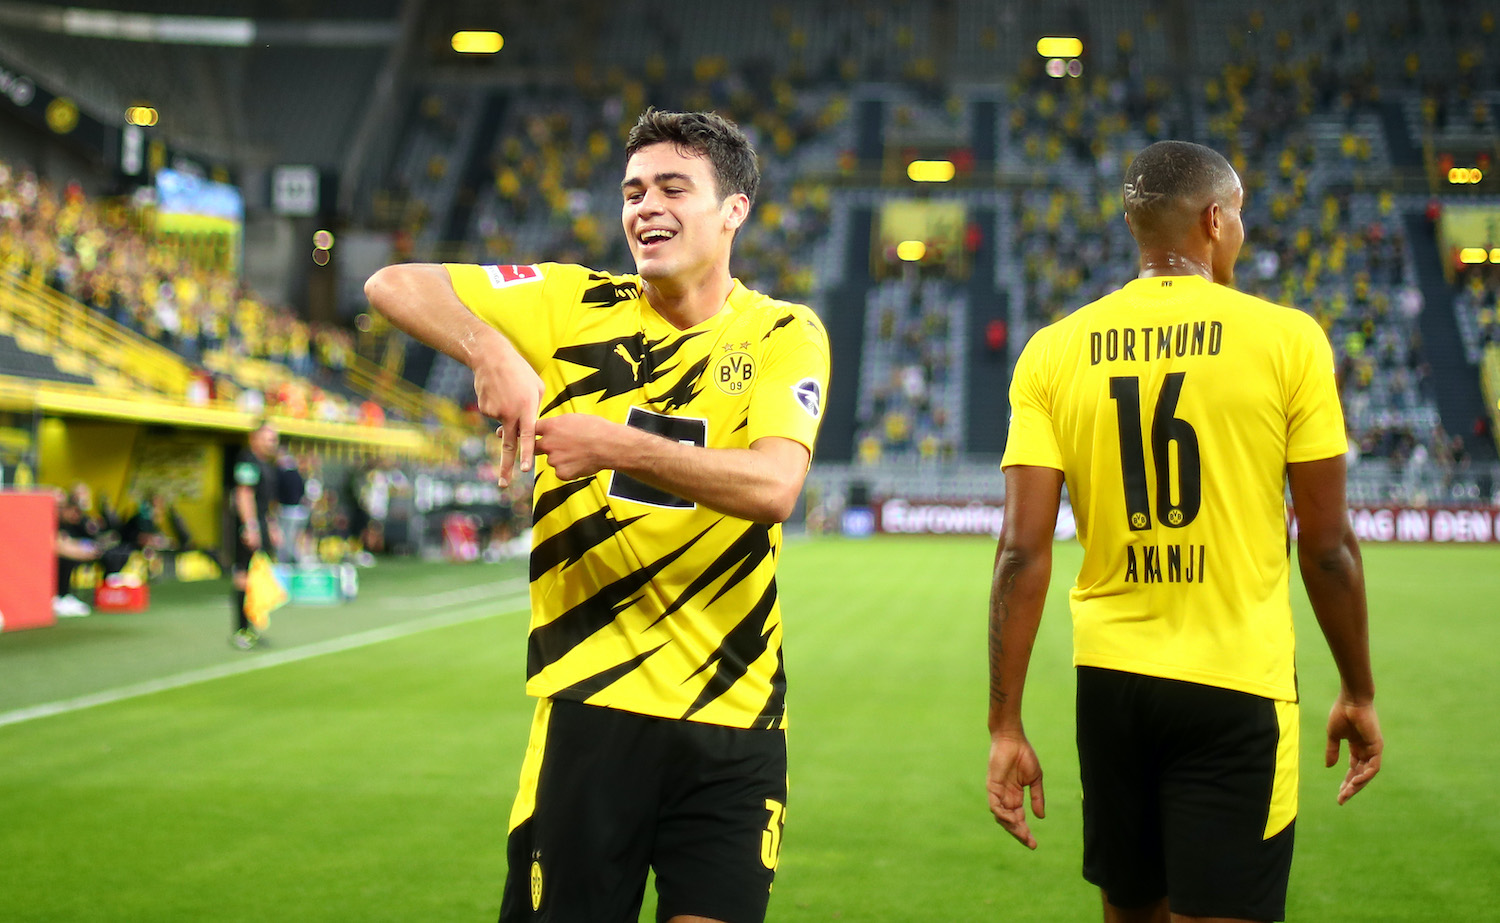 DORTMUND, GERMANY - SEPTEMBER 19: Giovanni Reyna of Borussia Dortmund celebrates after scoring his team's first goal during the Bundesliga match between Borussia Dortmund and Borussia Moenchengladbach at Signal Iduna Park on September 19, 2020 in Dortmund, Germany. Fans are set to return to Bundesliga stadiums in Germany despite to the ongoing Coronavirus Pandemic. Up to 20% of stadium's capacity are allowed to be filled. Final decisions are left to local health authorities and are subject to club's hygiene concepts and the infection numbers in the corresponding region. (Photo by Dean Mouhtaropoulos/Getty Images)